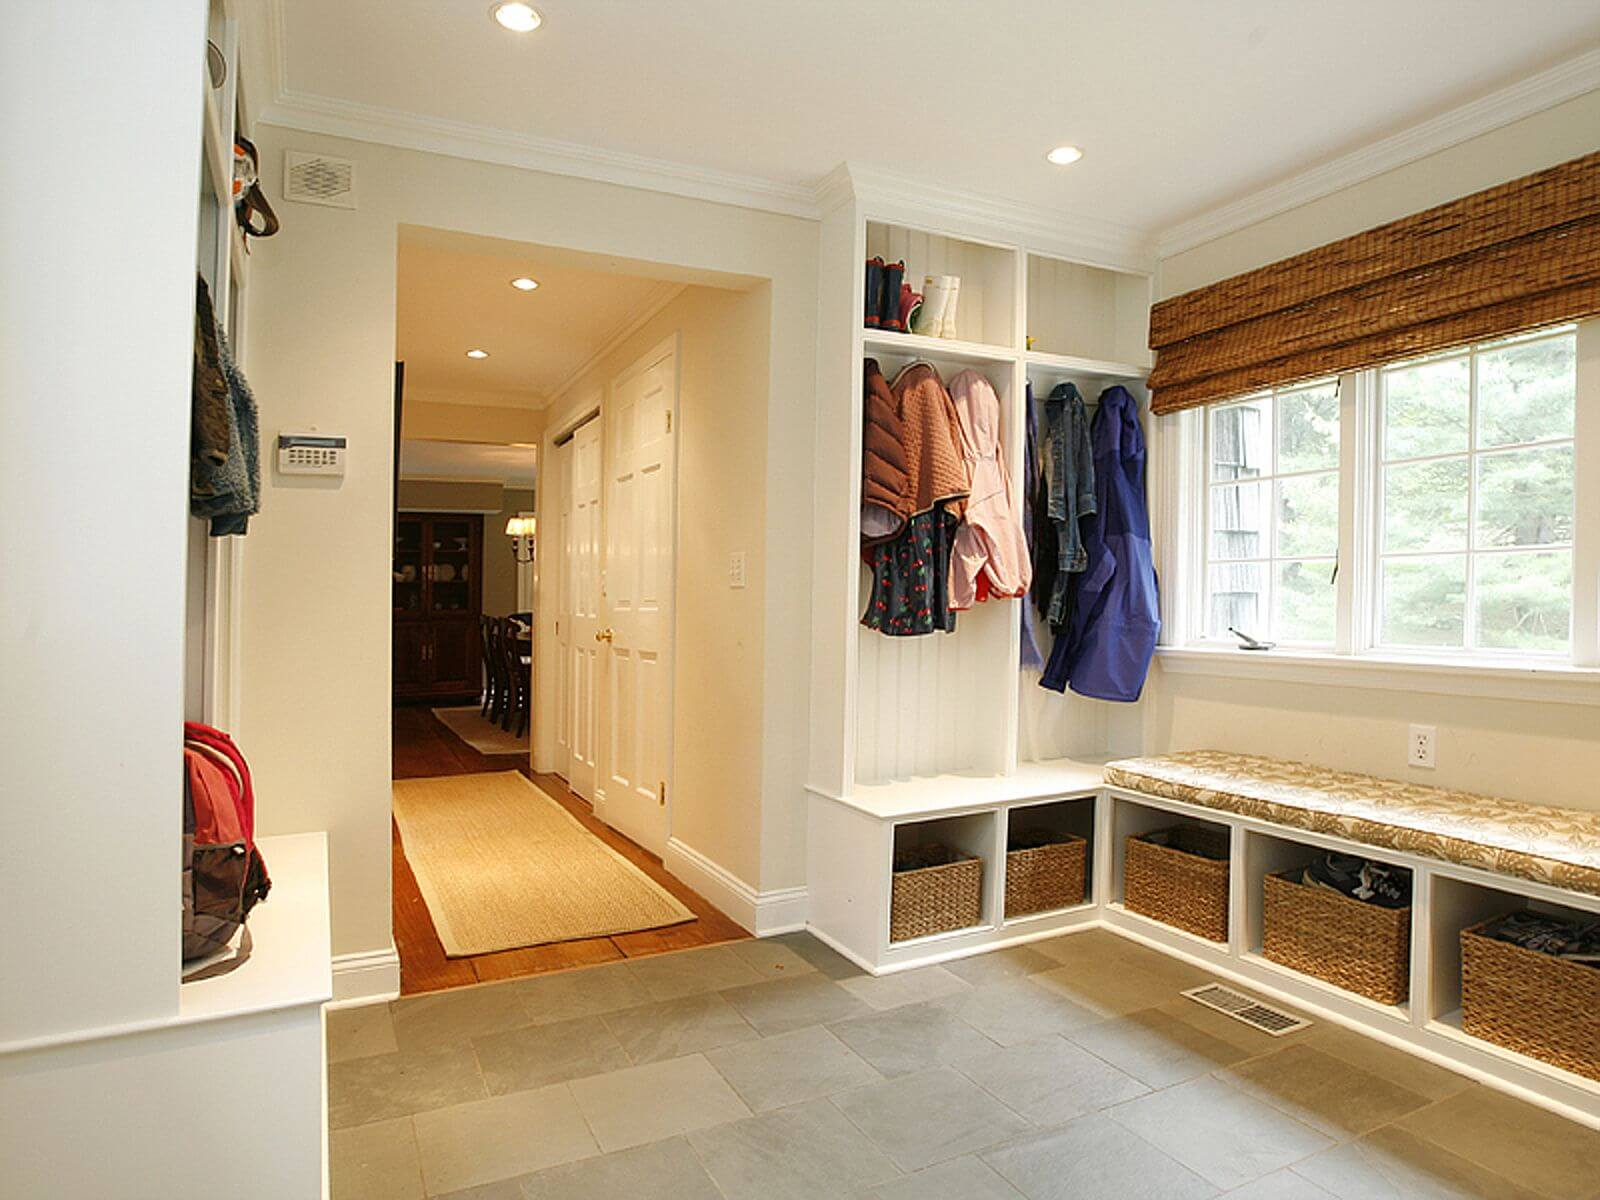 45 superb mudroom entryway design ideas with benches On mudroom layout